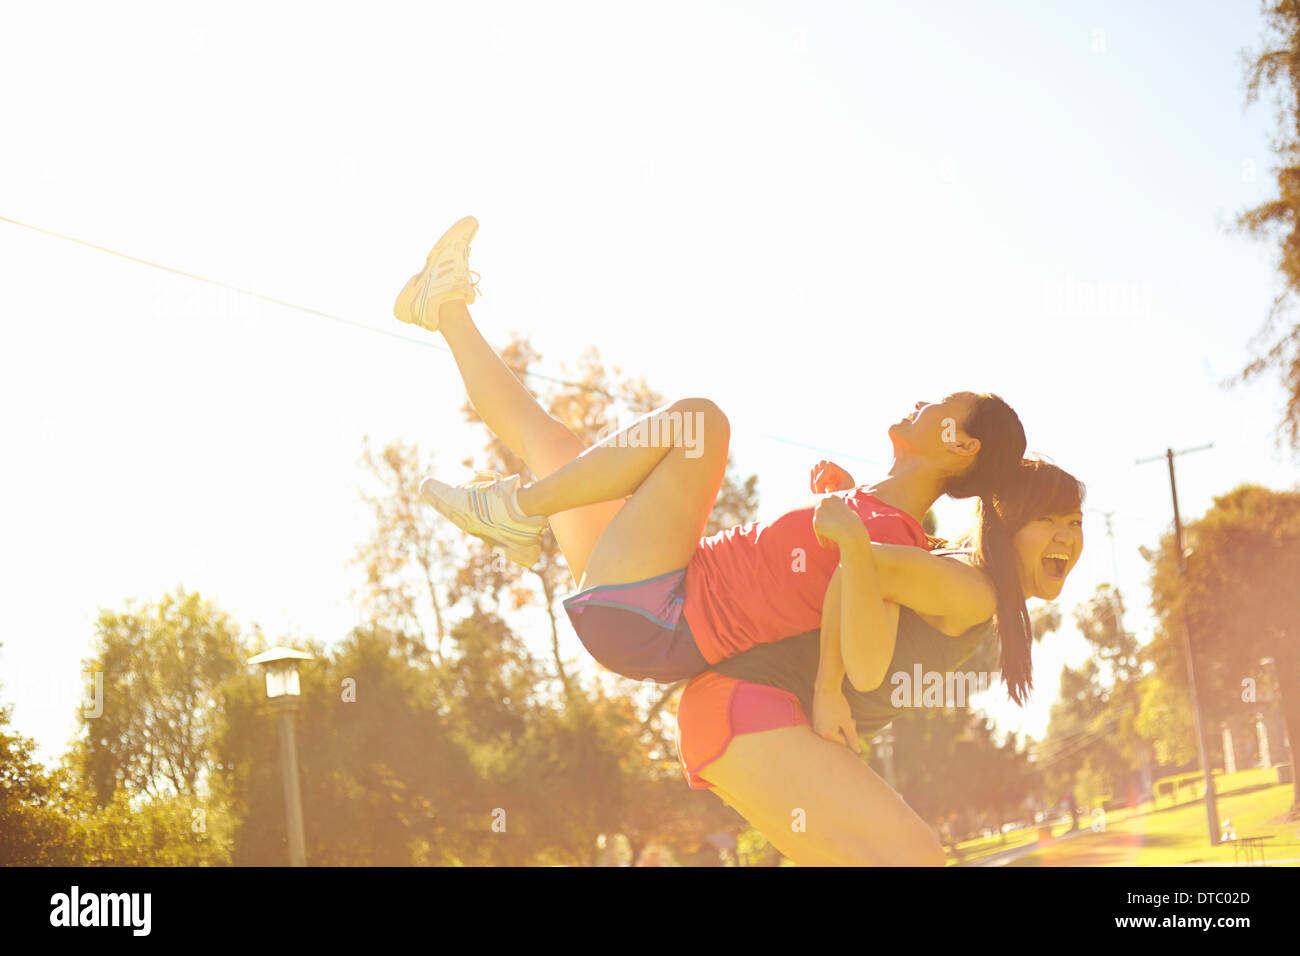 Two young women having fun in park - Stock Image